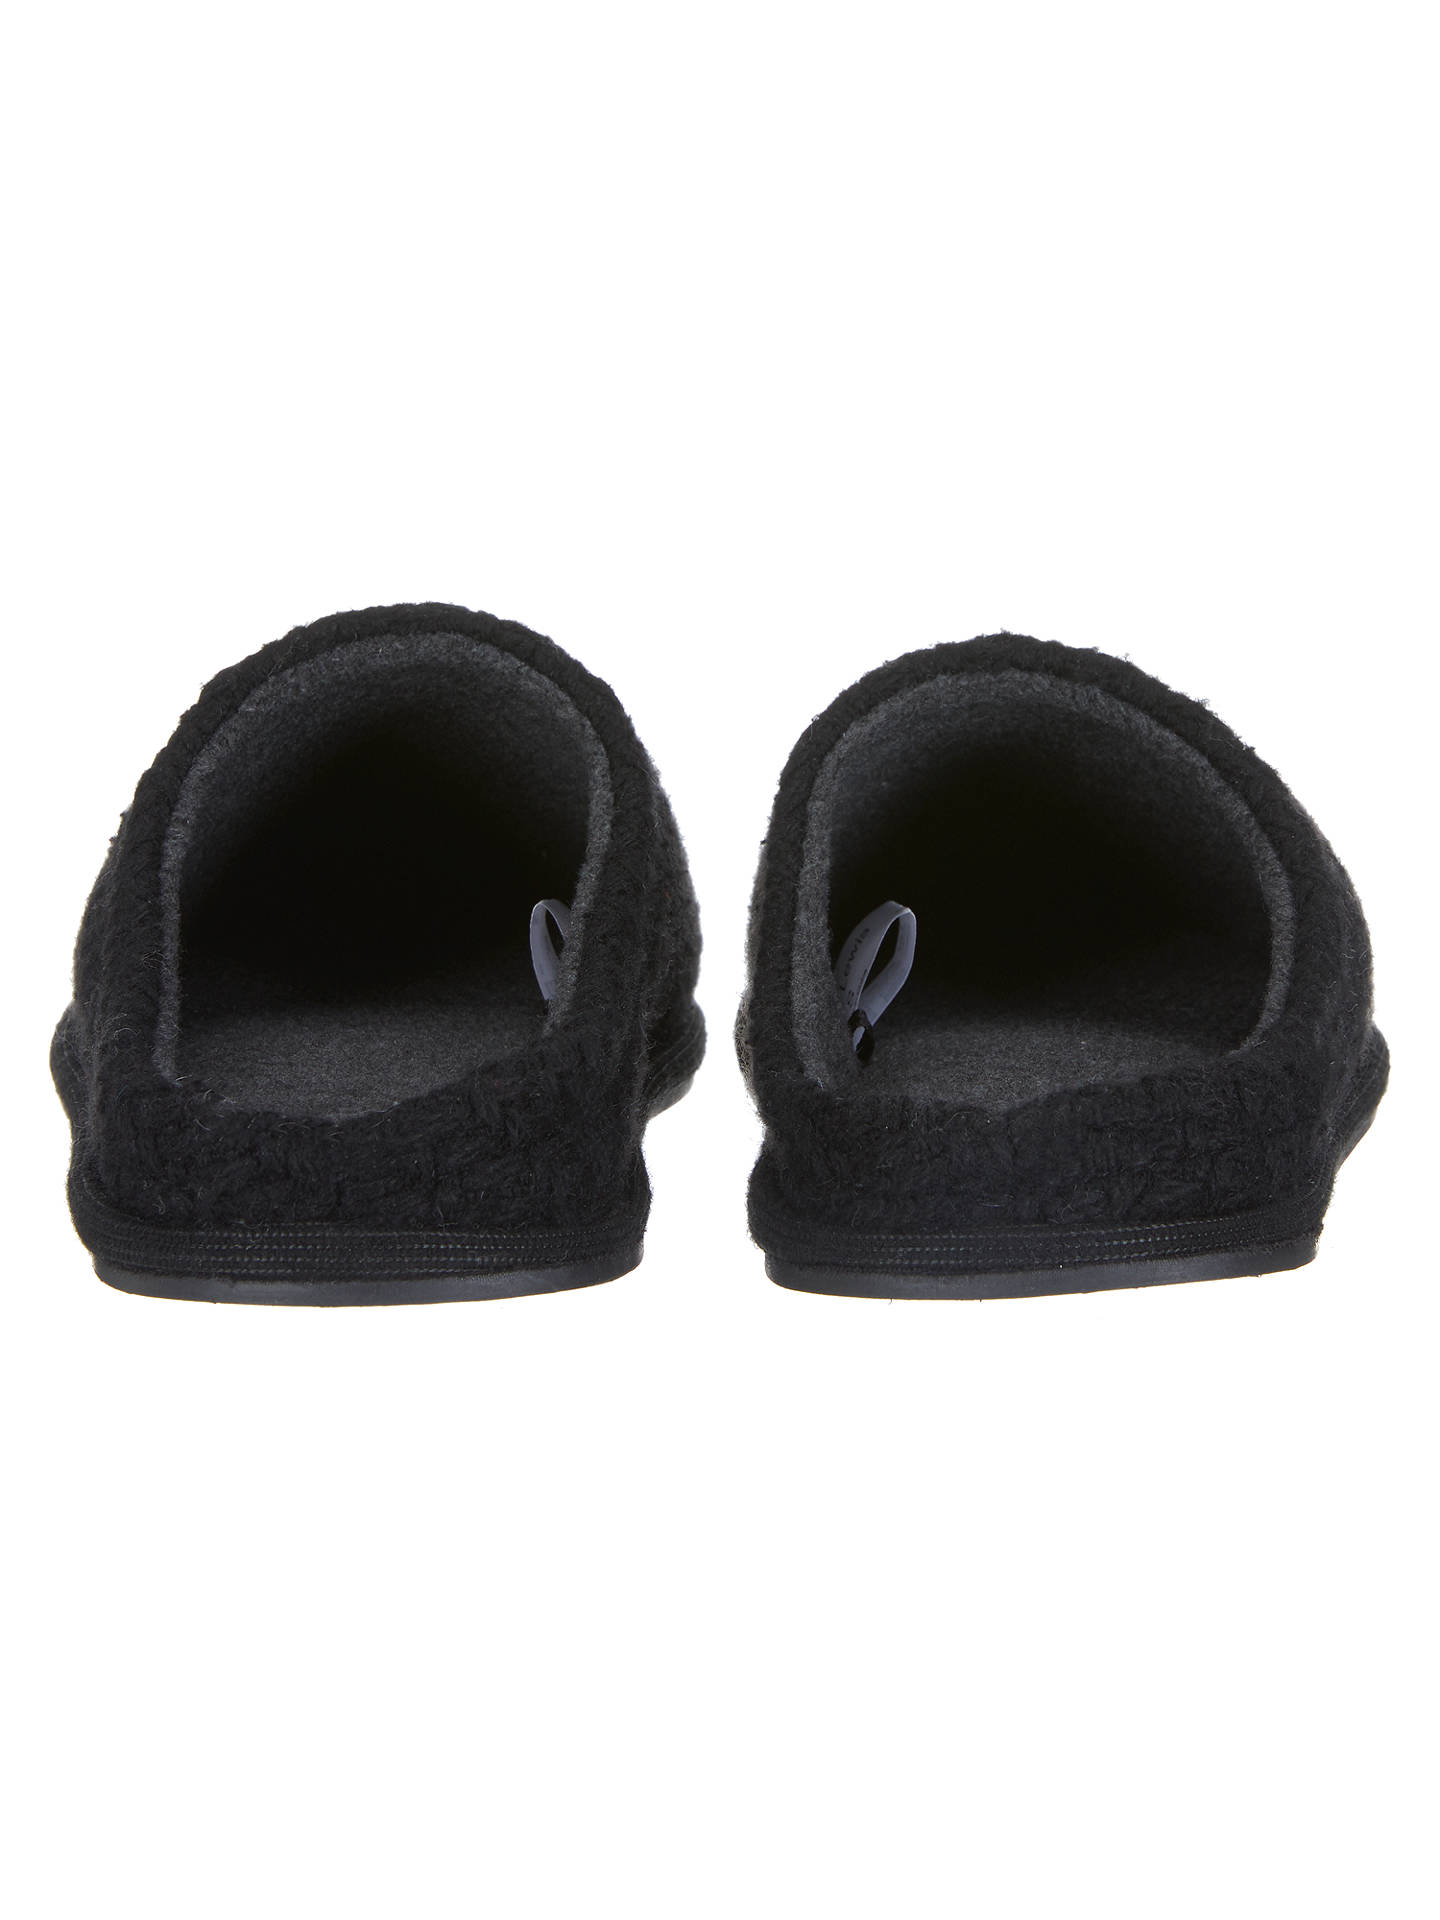 BuyJohn Lewis & Partners Basketweave Mule Slippers, Black, S Online at johnlewis.com